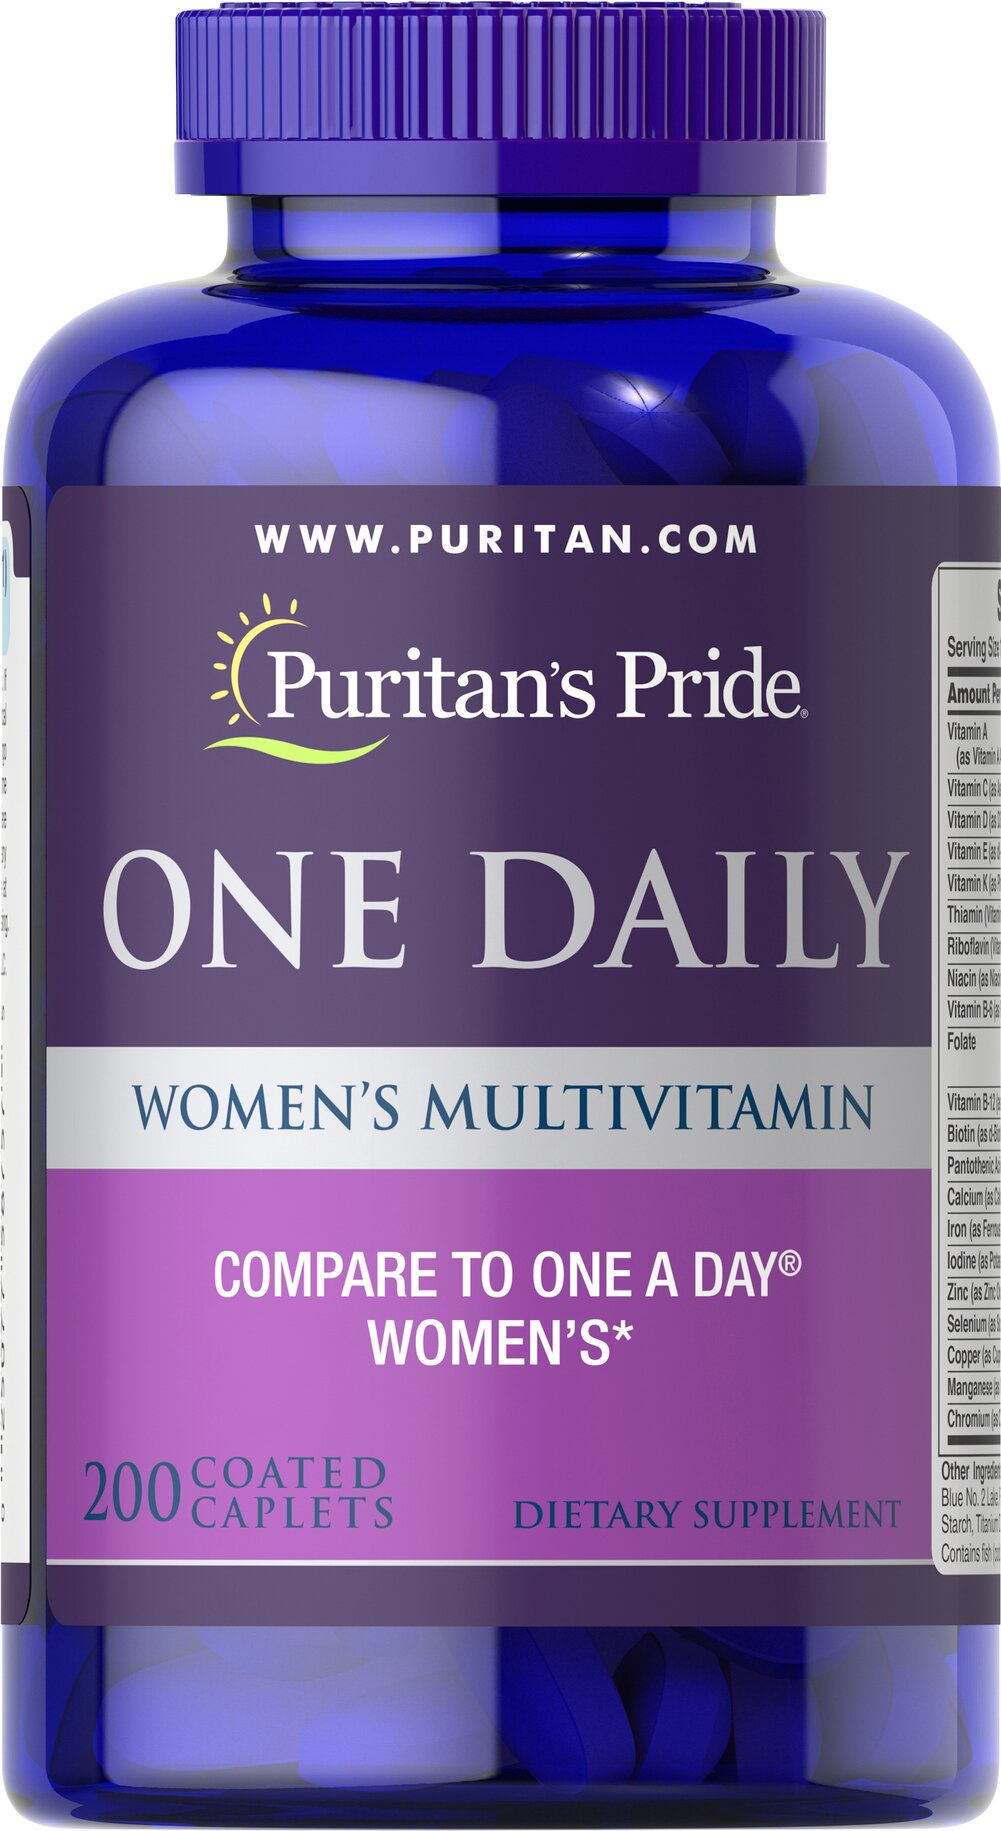 Women's One Daily Multivitamins <p><b>A Convenient Vitamin for the Woman on the Go!</b></p>  <p>Once-daily formula provides a valuable array of vitamins and minerals**</p> <p>Includes 1000 IU of Vitamin D to promote bone and immune system health**</p> <p>Provides 100% of the Daily Value of 5 different B-Vitamins to aid with energy metabolism and nervous system health**</p> 200 Caplets  $24.99